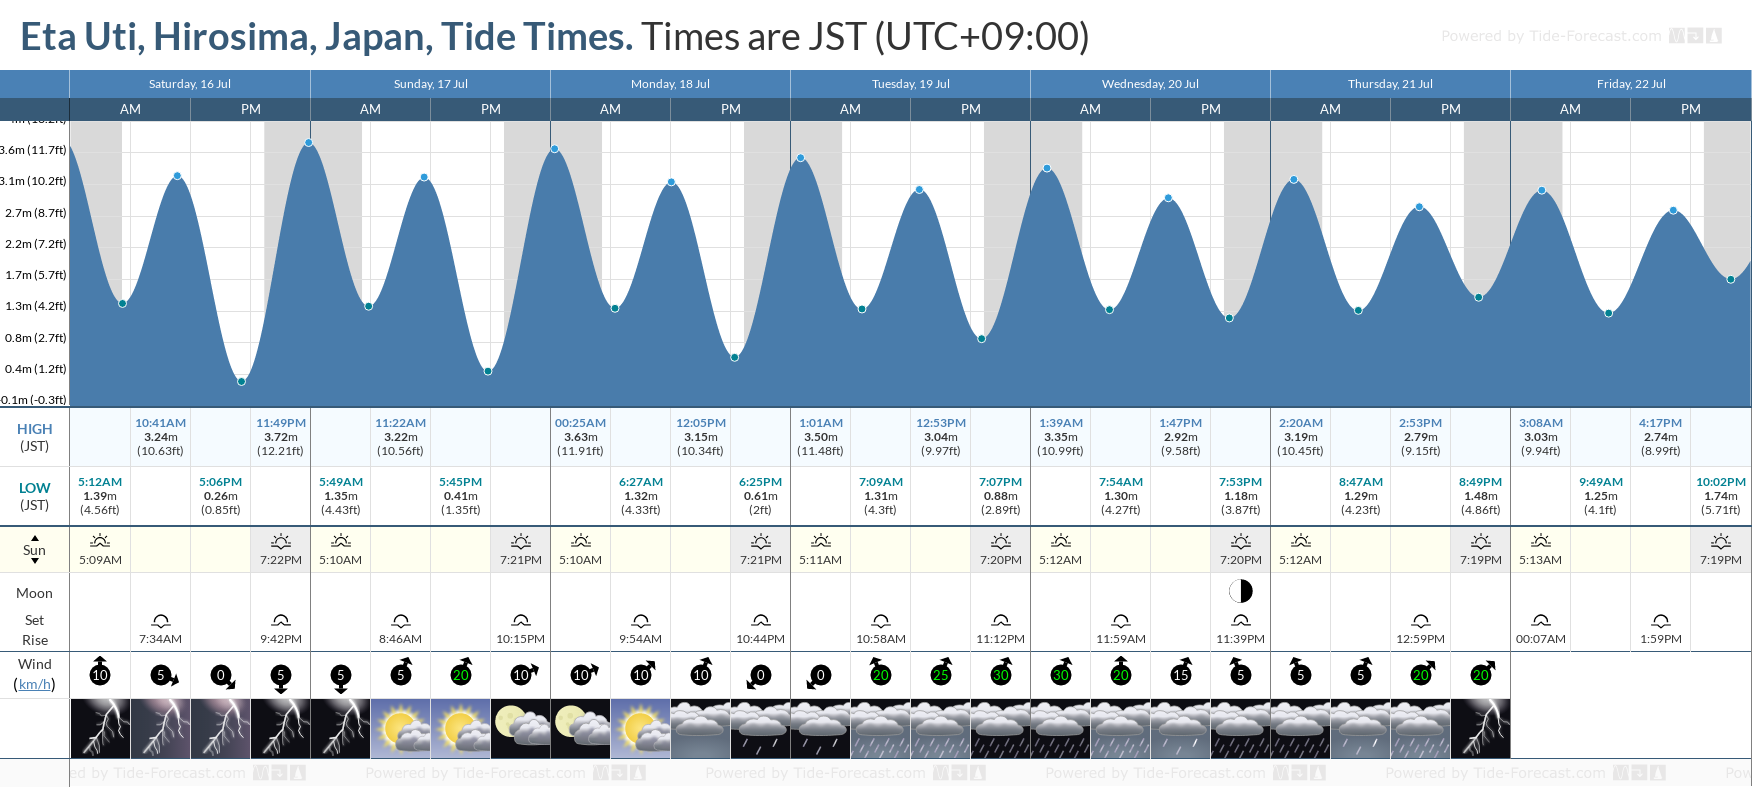 Eta Uti, Hirosima, Japan Tide Chart including high and low tide tide times for the next 7 days